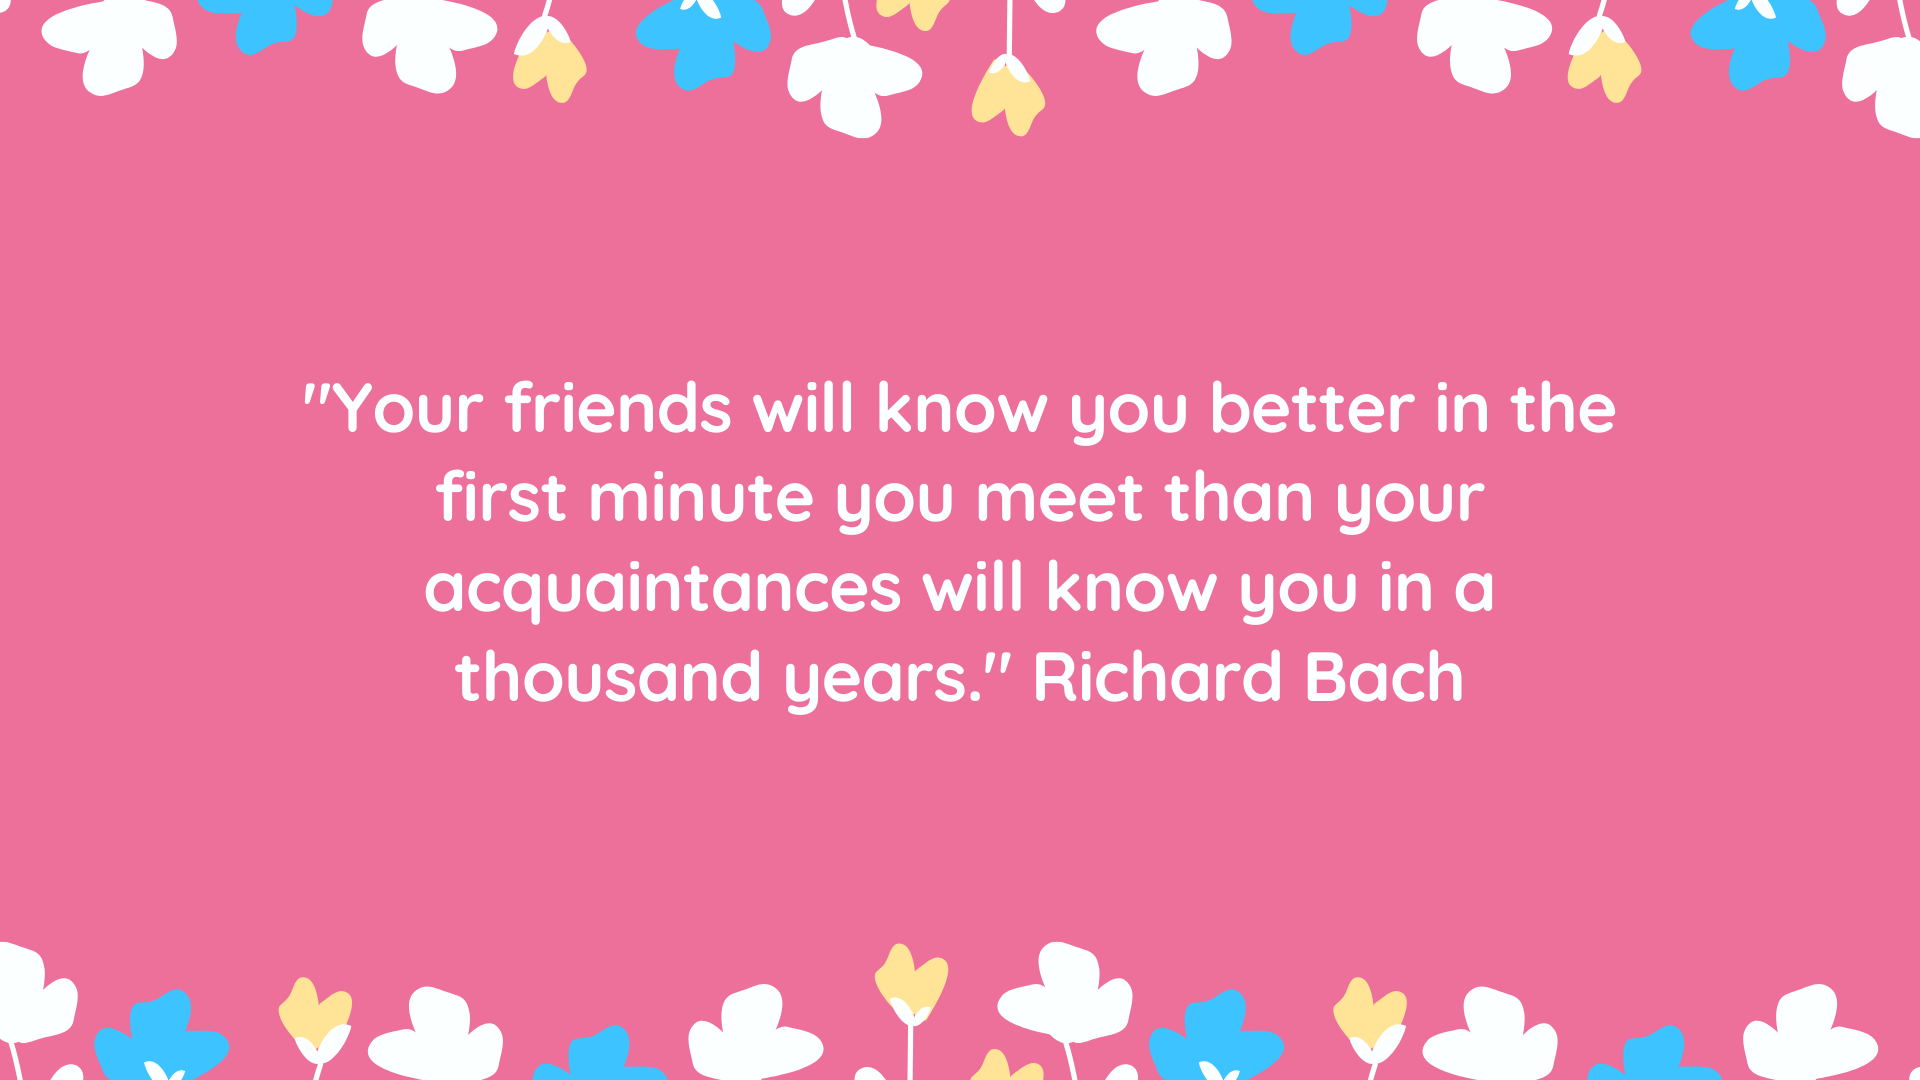 """Your friends will know you better in the first minute you meet than your acquaintances will know you in a thousand years."" Richard Bach"